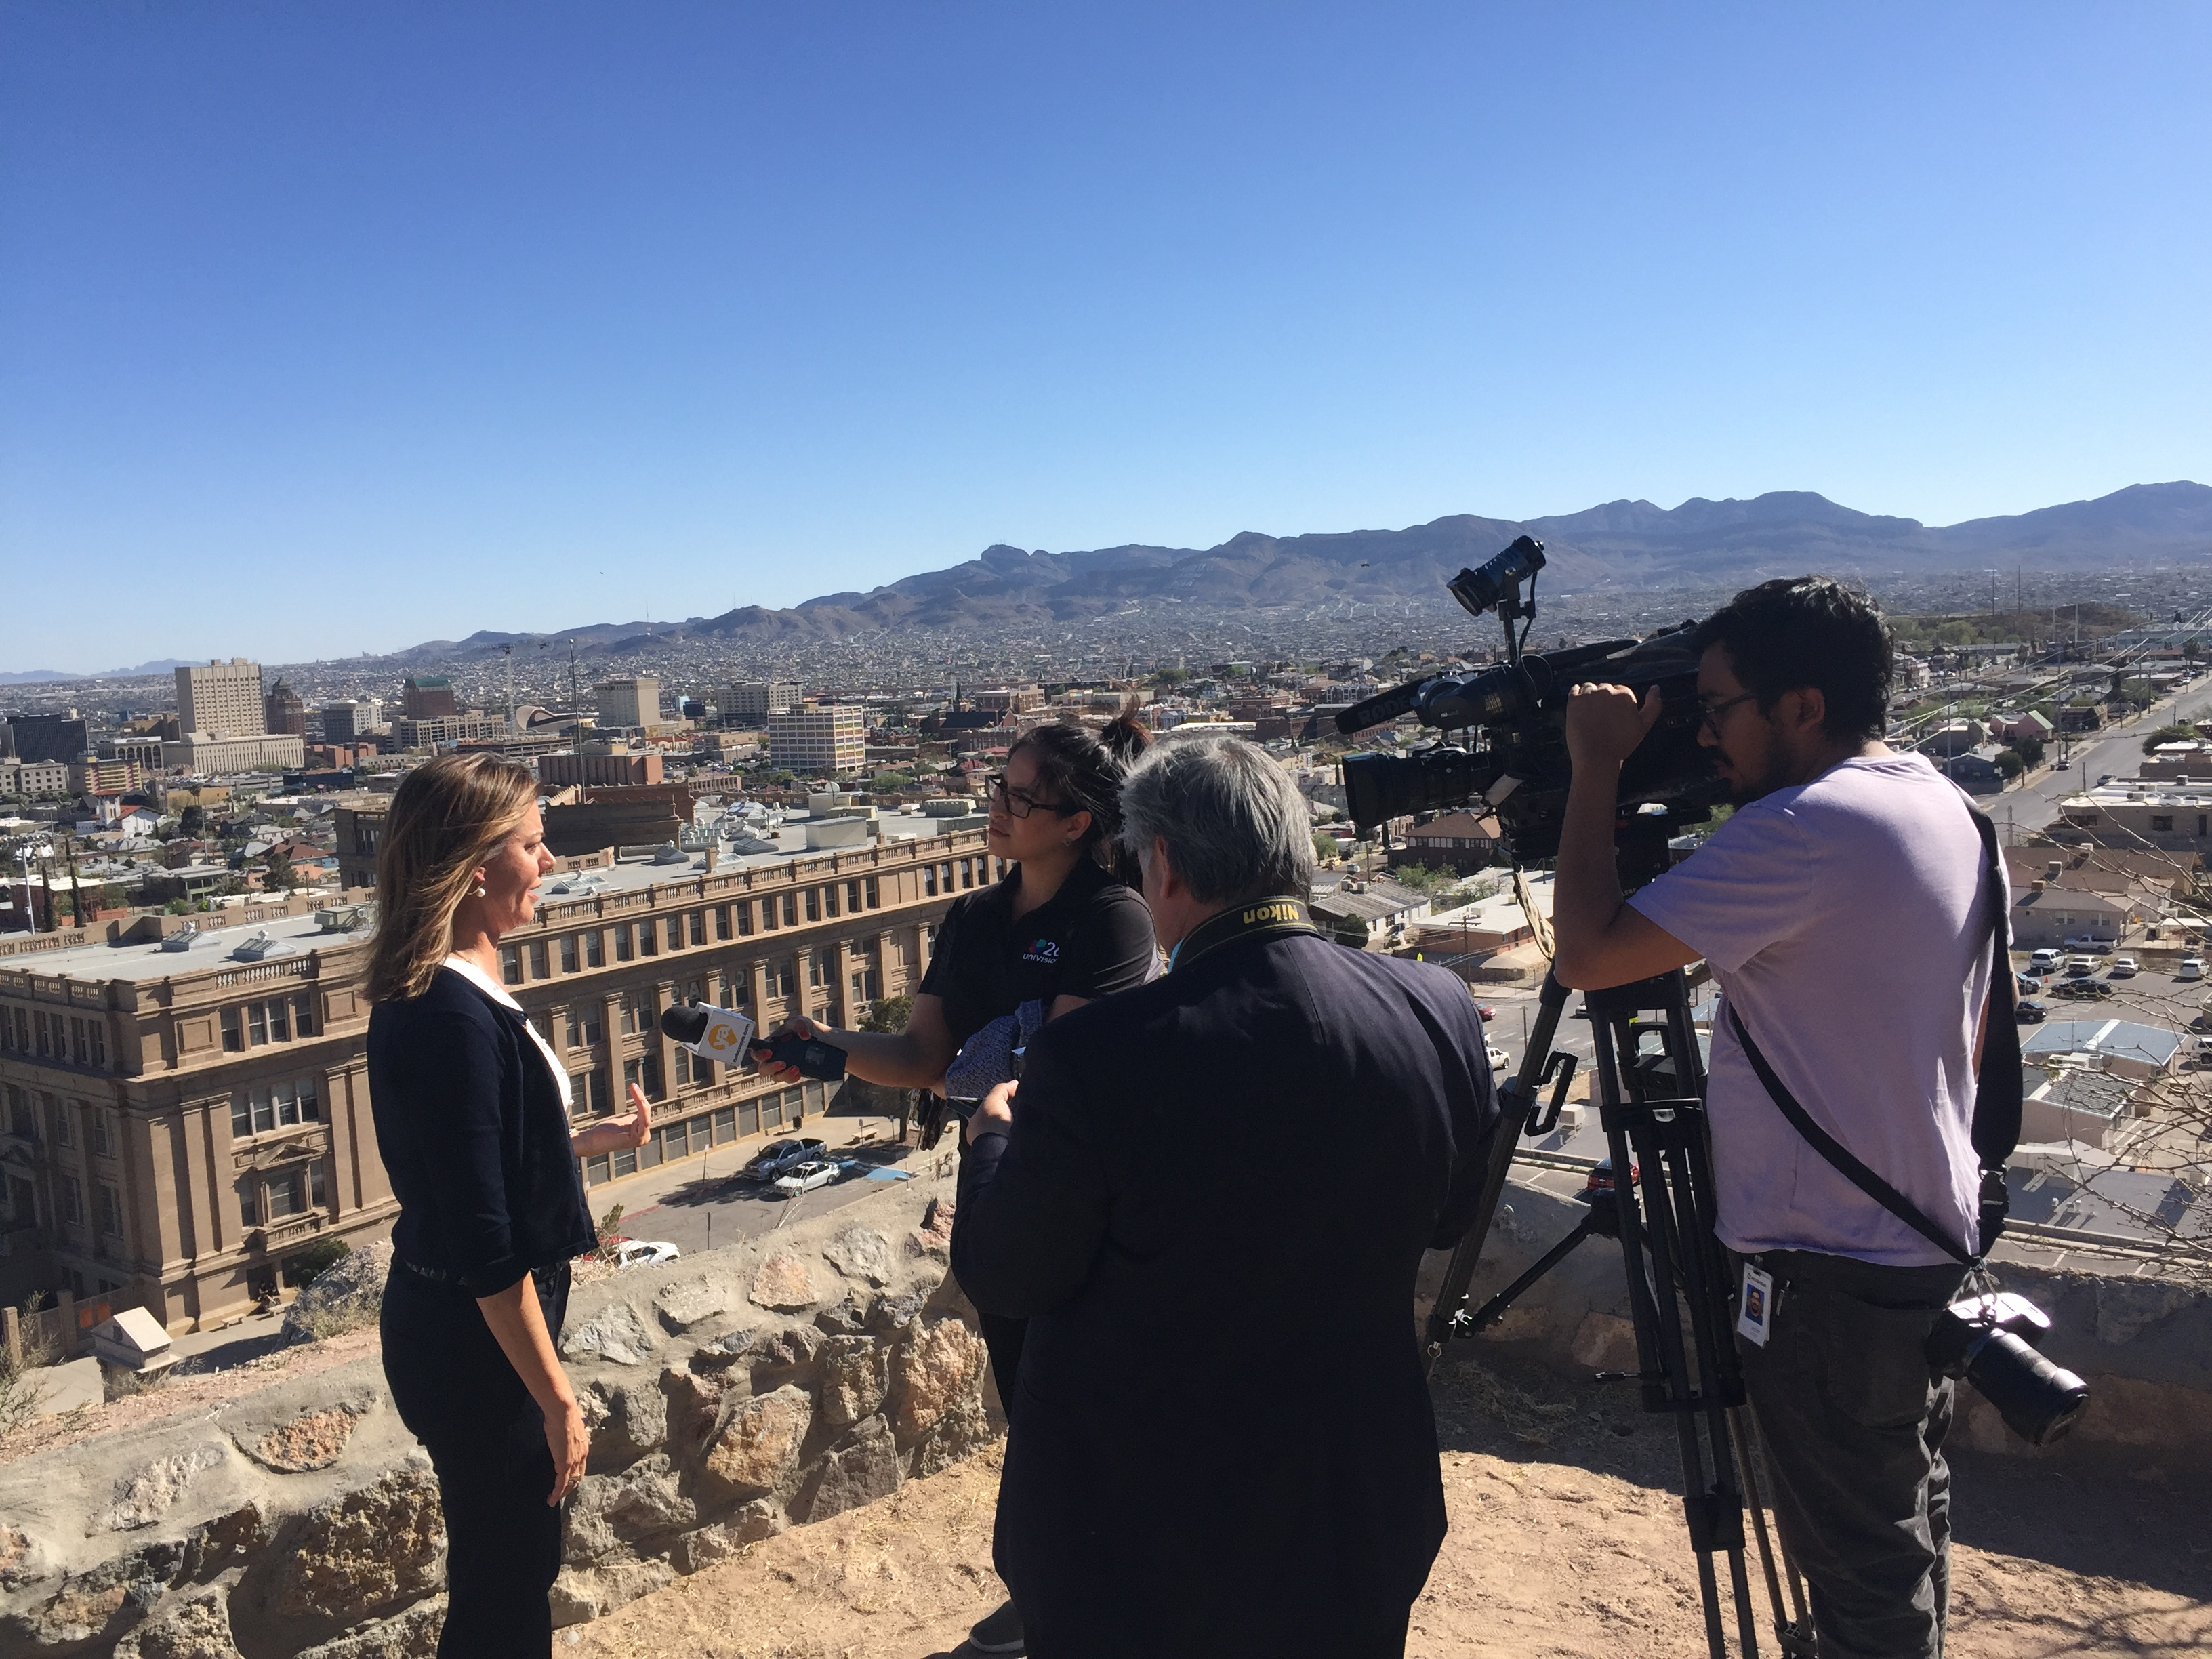 El Paso &Juárez - March 2019  Pacific Council member Mary Ann Walker is interviewed in Spanish and English by local media about the implementation and impacts of immigration policy at the border during a delegation to El Paso, Texas, and Ciudad Juárez, Mexico, in March 2019.